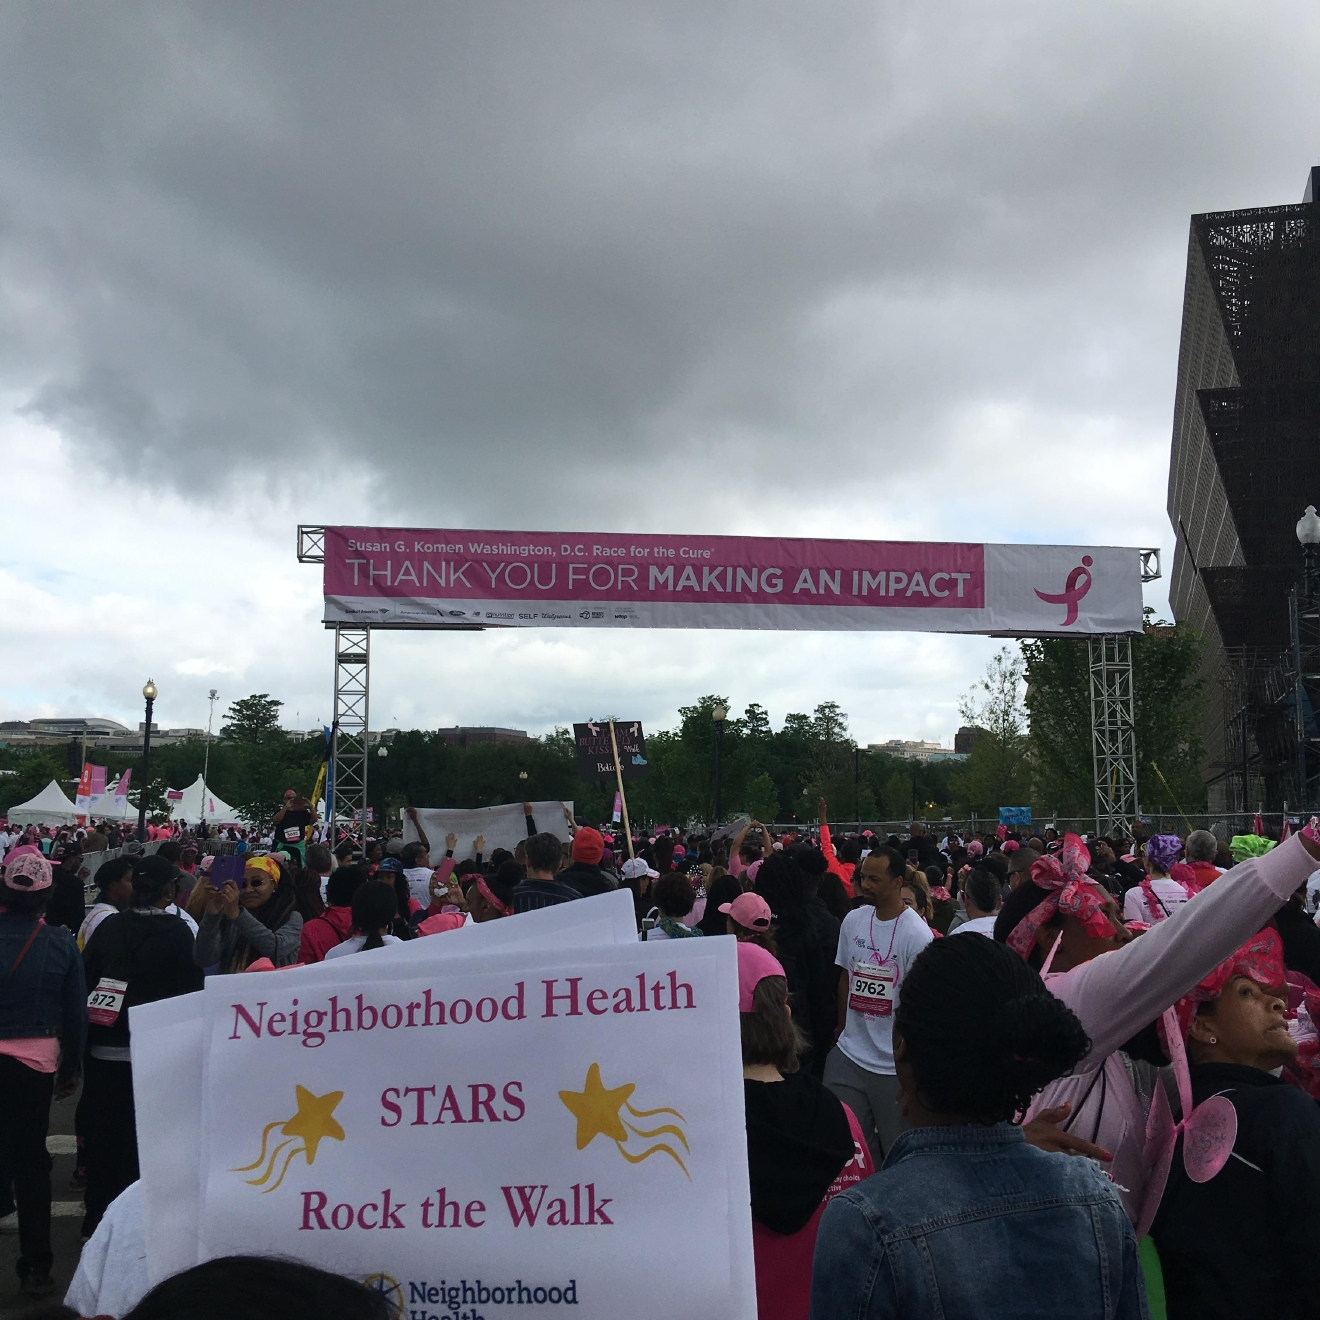 Susan G. Komen Race for the Cure, Saturday, May 7, 2016. (D. Baker)